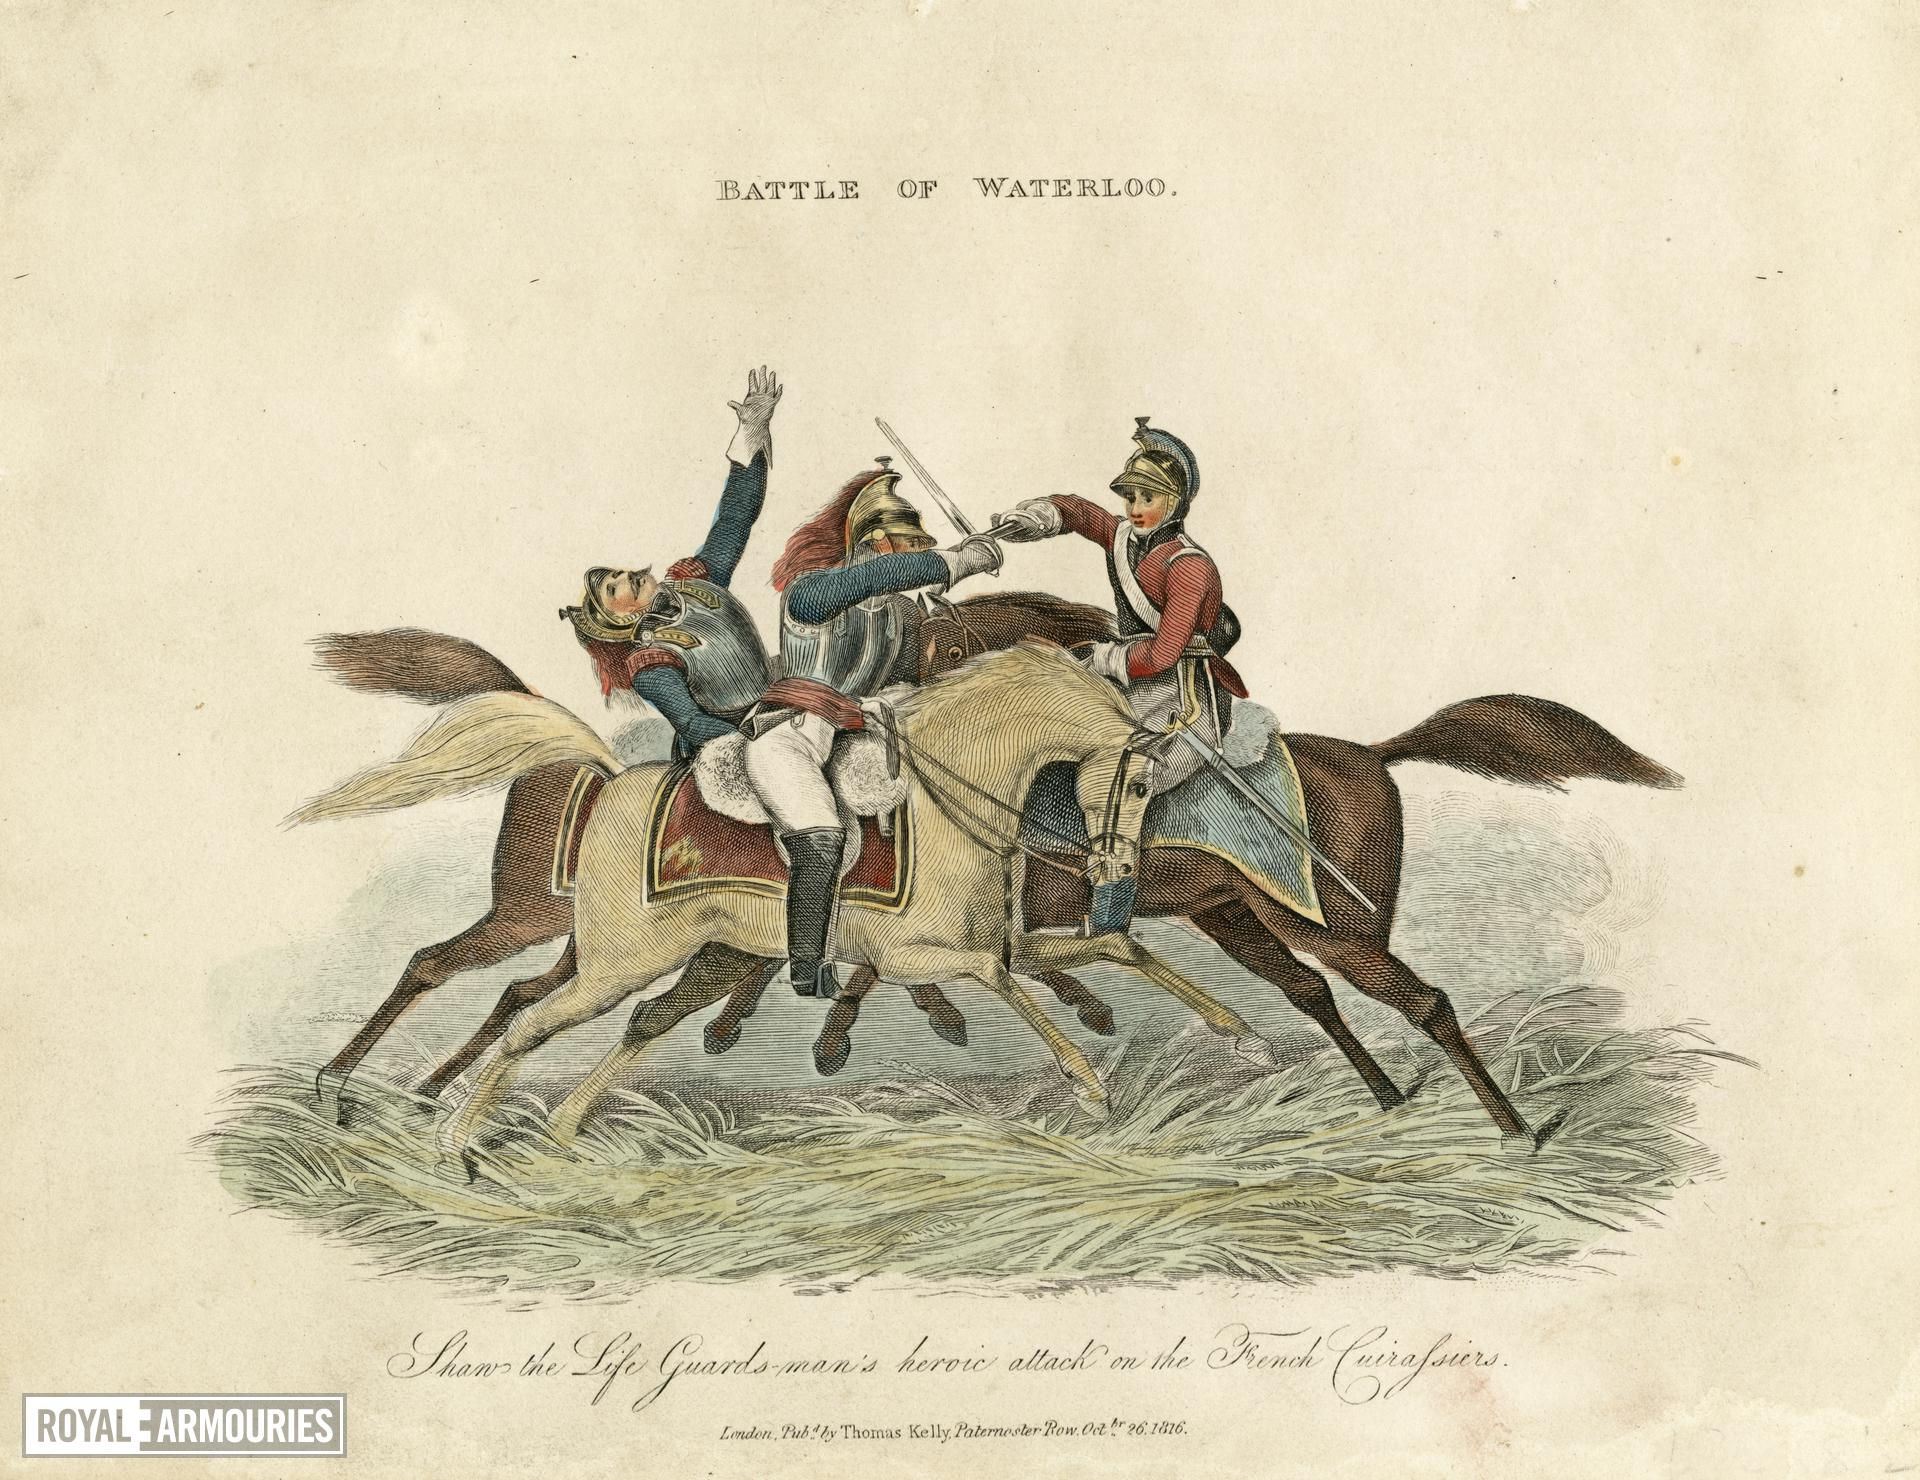 Hand coloured engraving showing Corporal John Shaw, 2nd Life Guards, at the battle of Waterloo,1816, London, Britain. Published by Thomas Kelly, Paternoster Row, October 26th, 1816. (I.53)